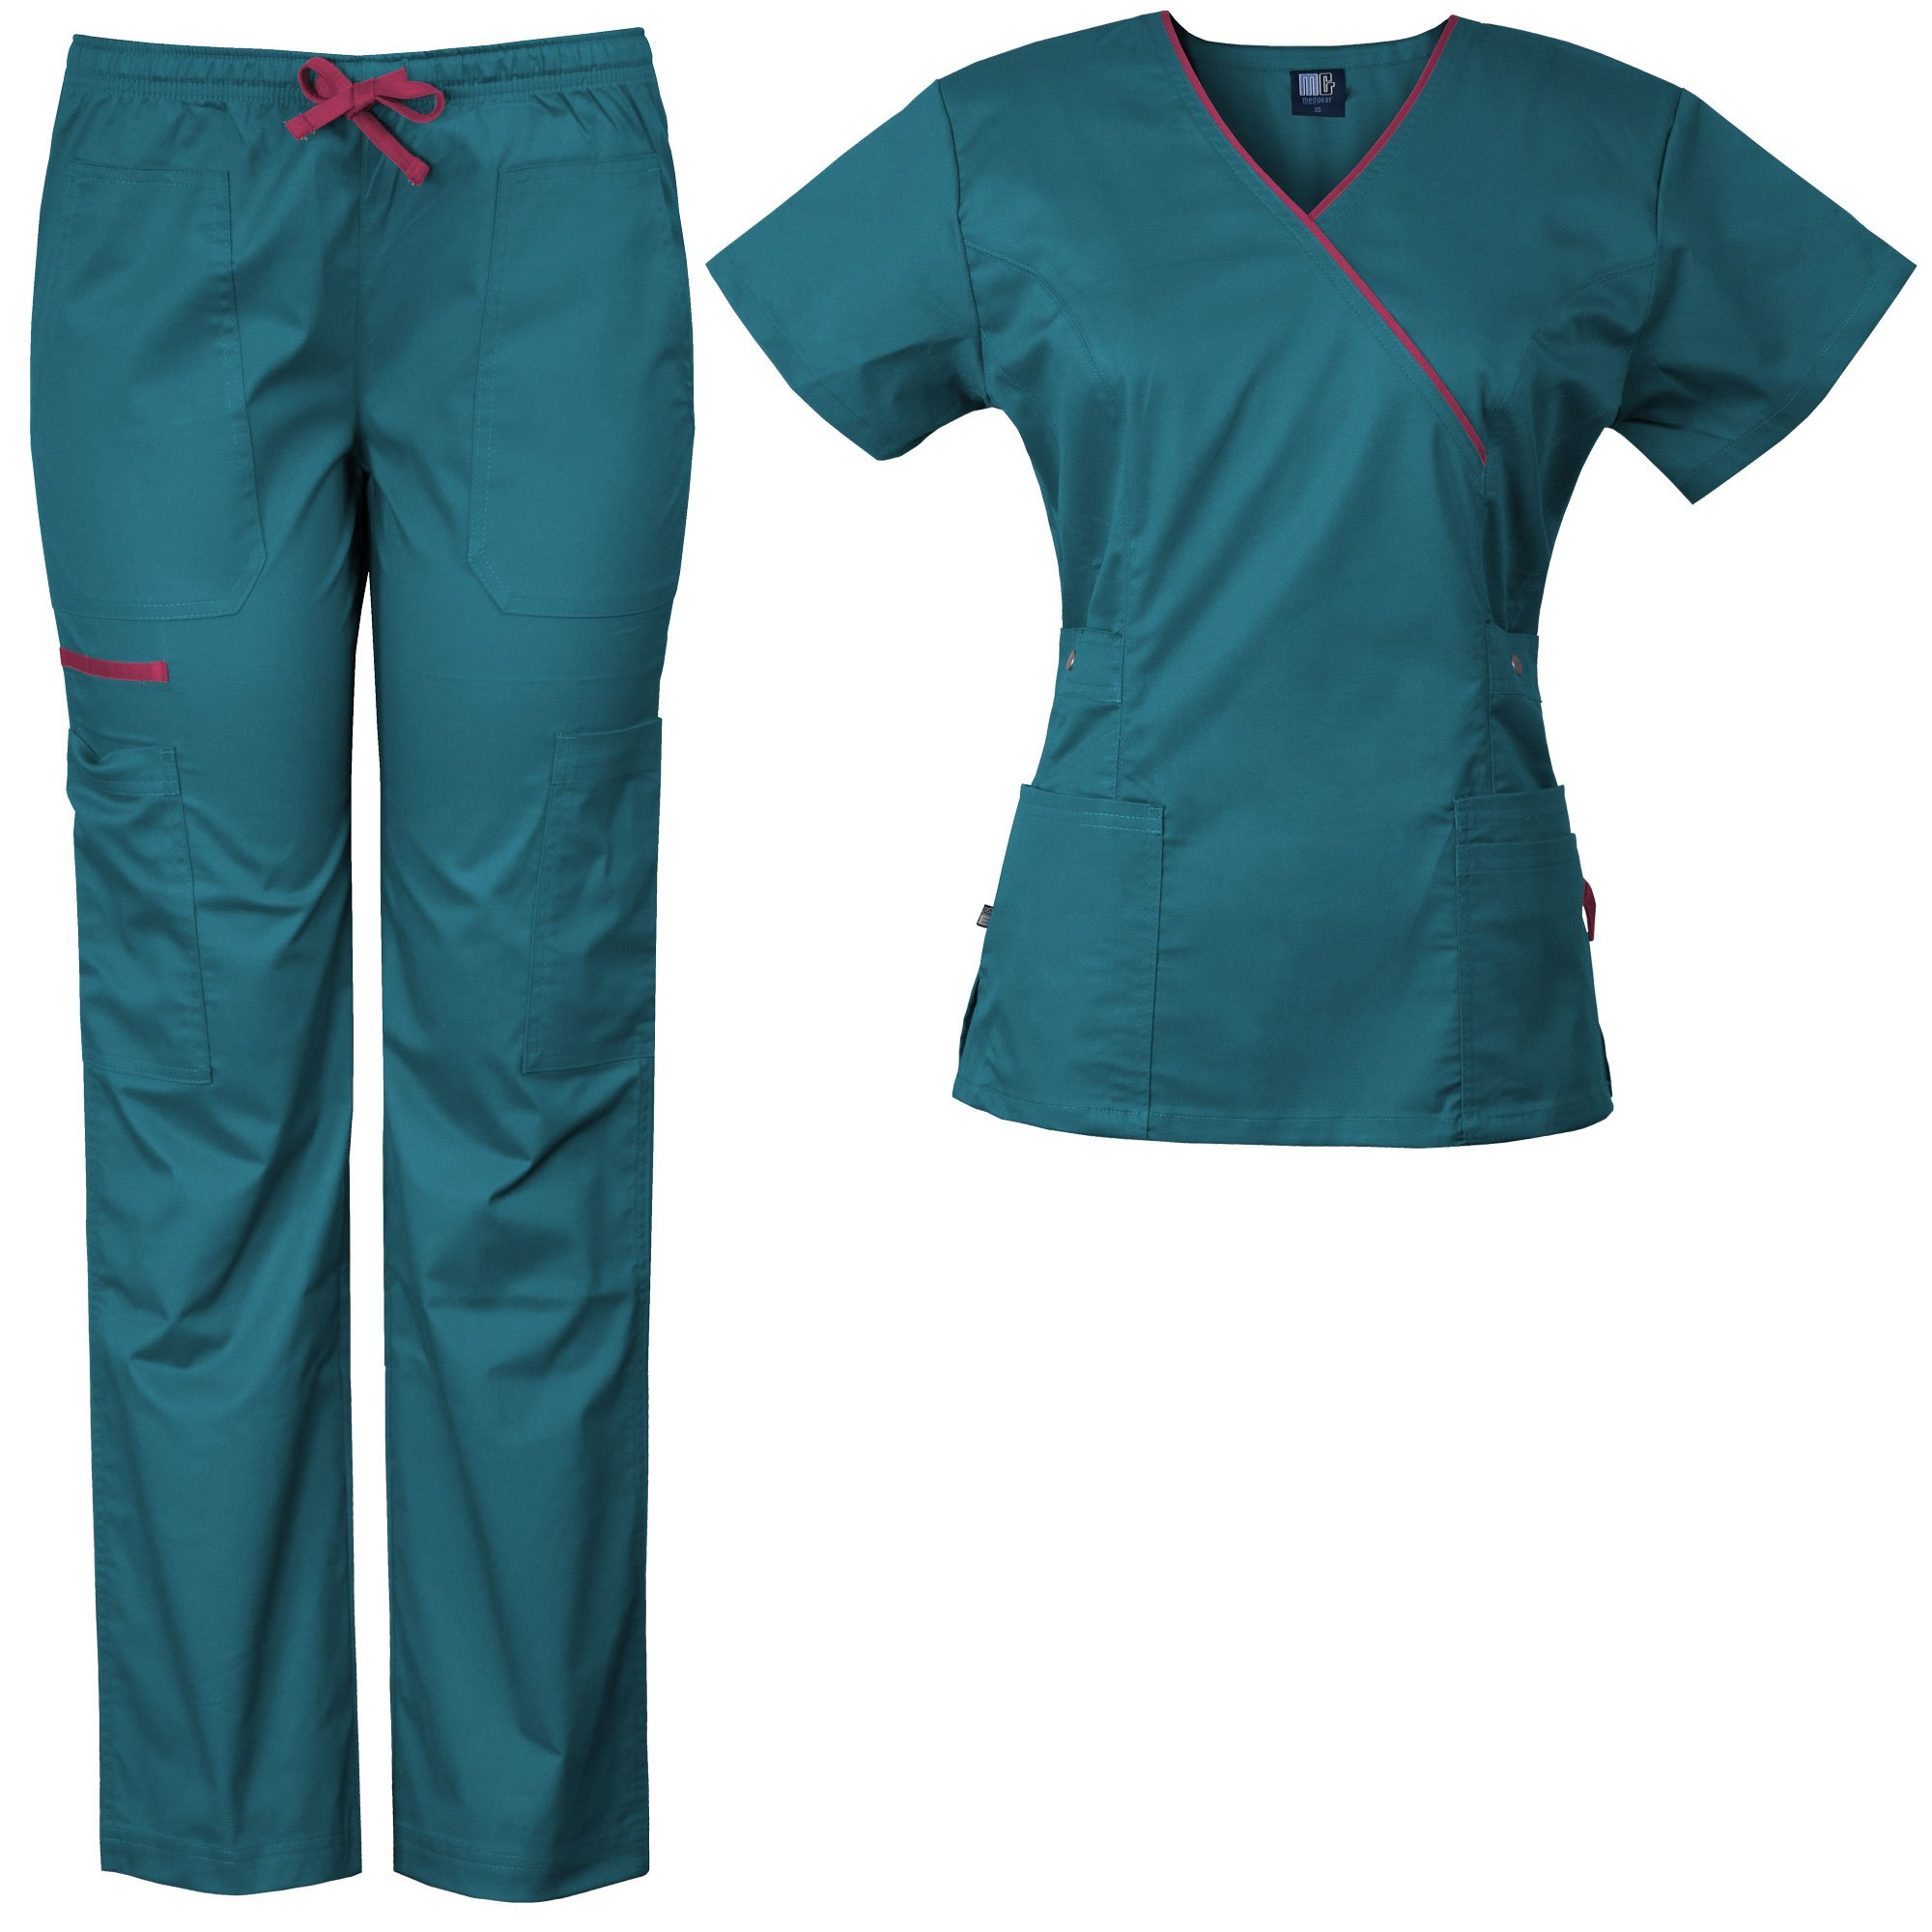 Medgear Women's Stretch Scrubs Set 5-Pocket Top & Multi-Pocket Pants (XS, Teal/Hot Pink)